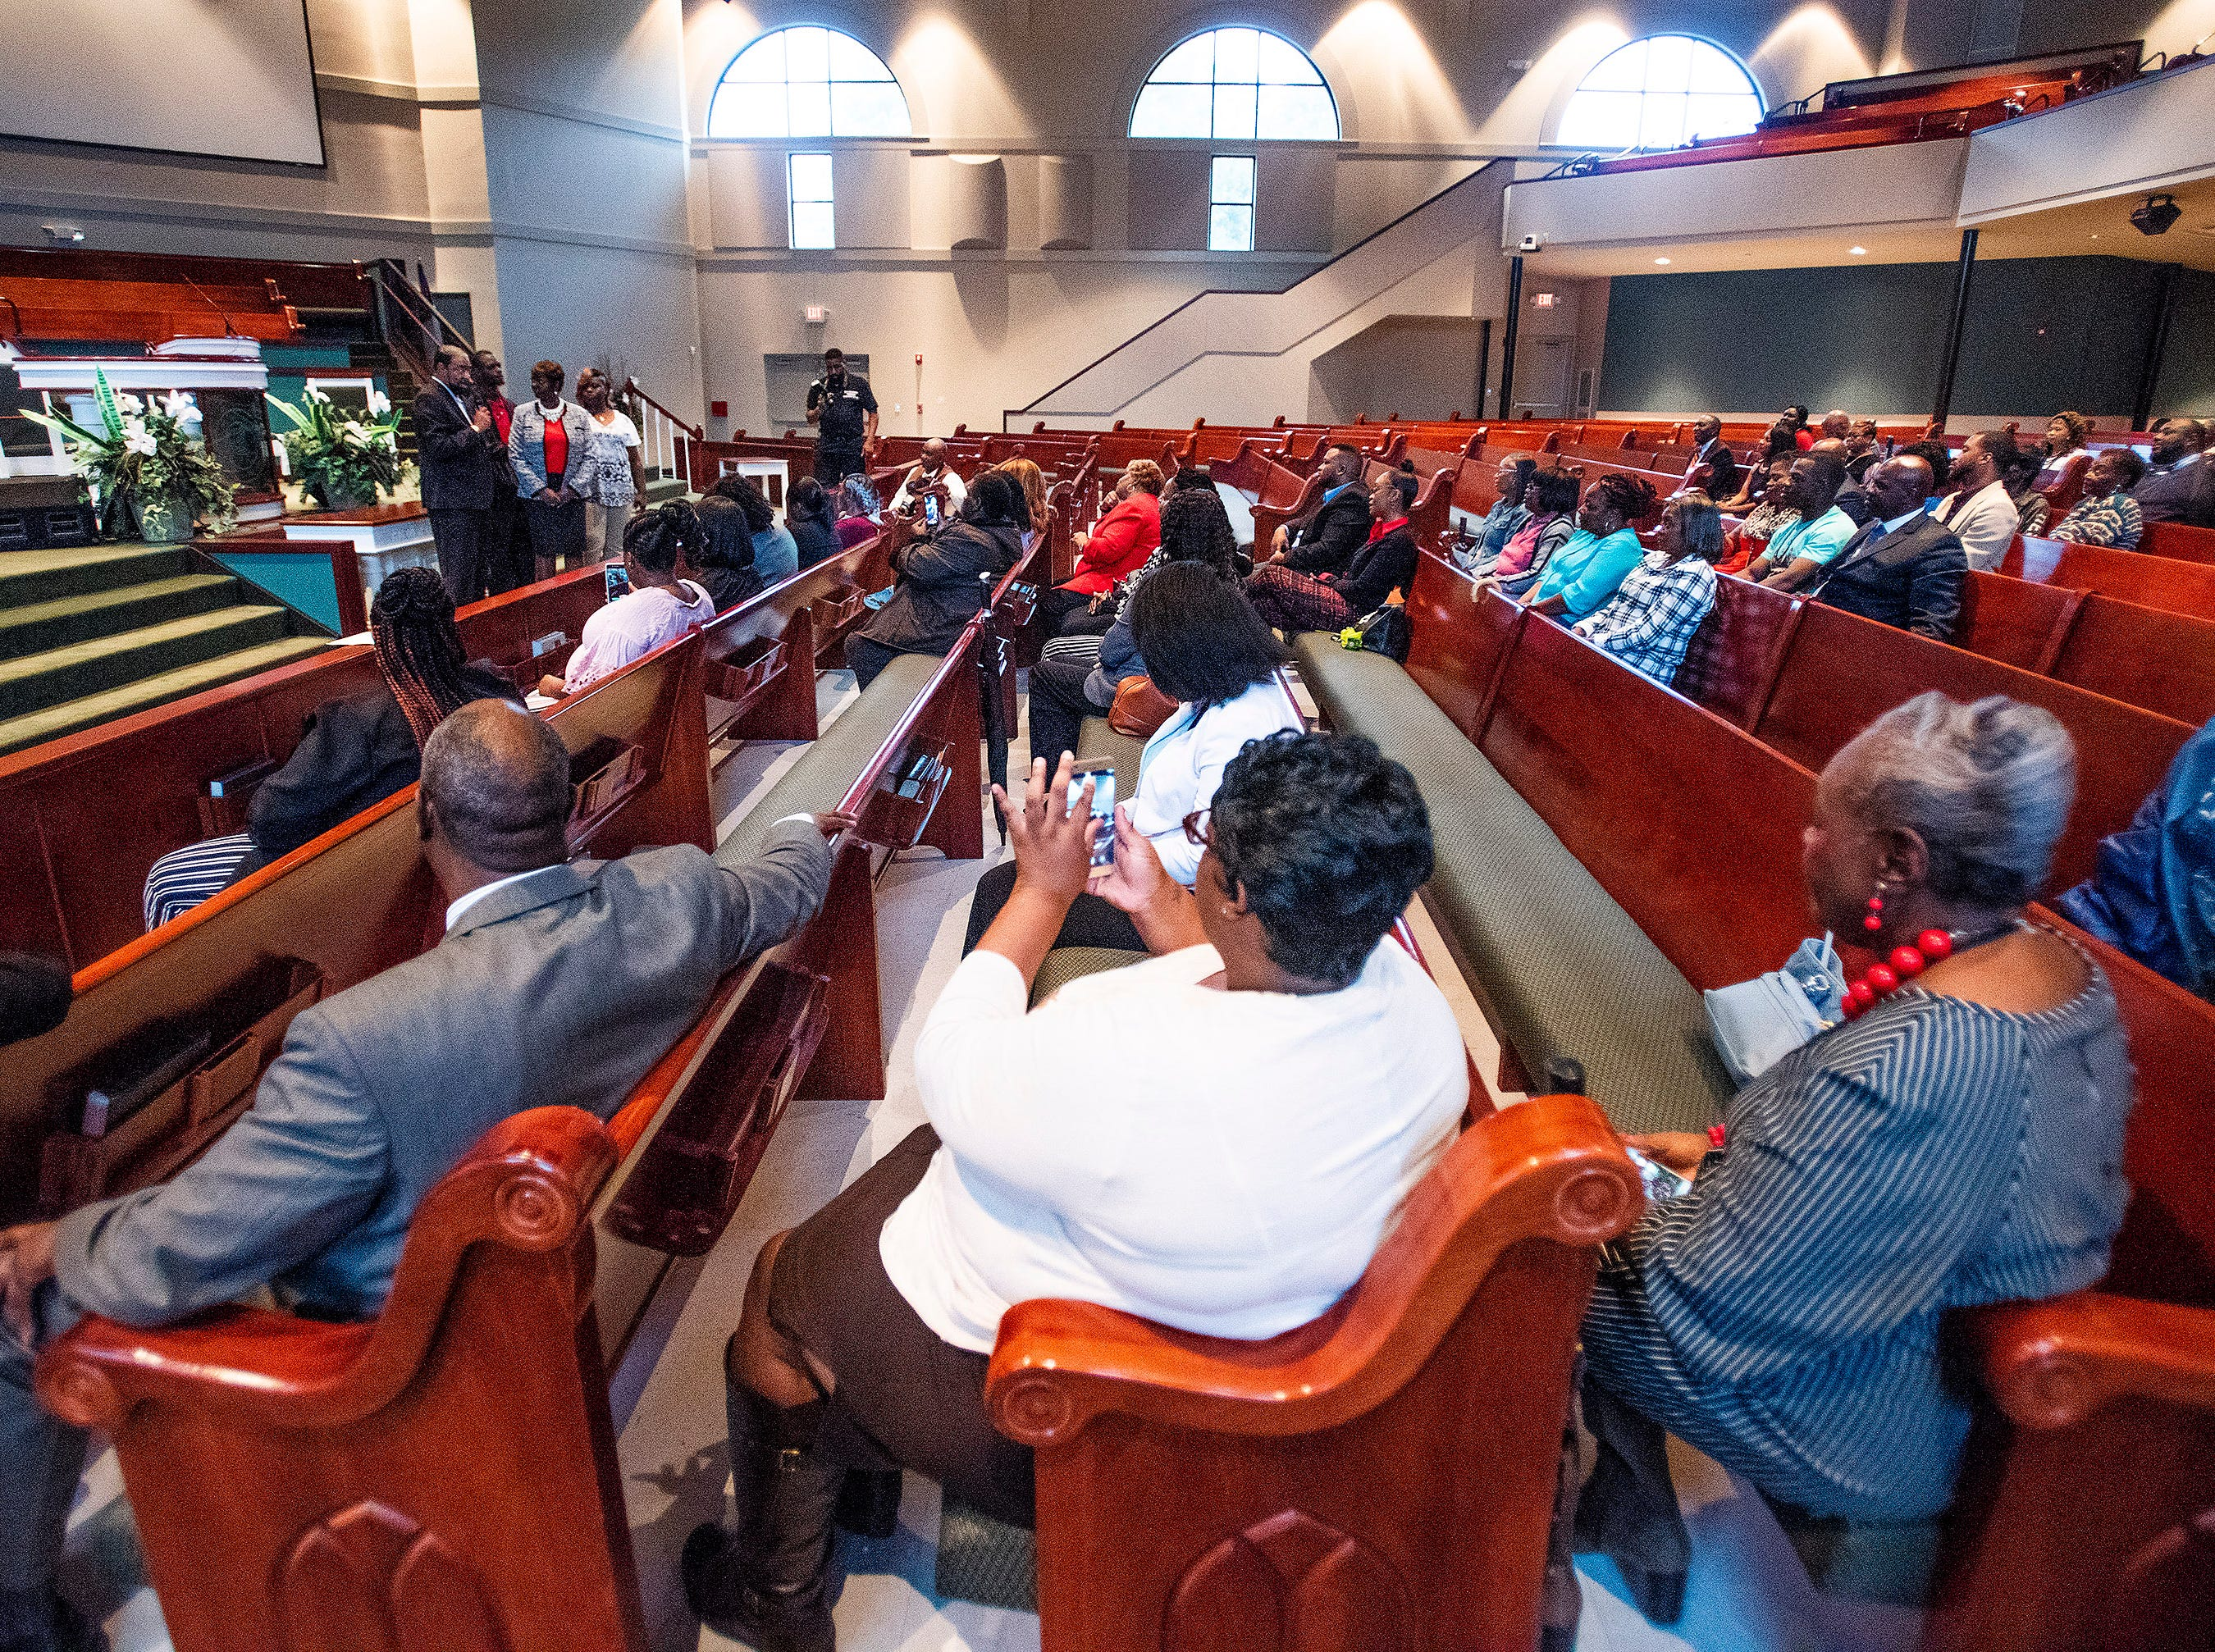 A crowd looks on during the swearing-in ceremony of Representative Tashina Morris at Freewill Baptist Church in Montgomery, Ala., on Wednesday November 7, 2018. Morris is Montgomery's first black female legislator.